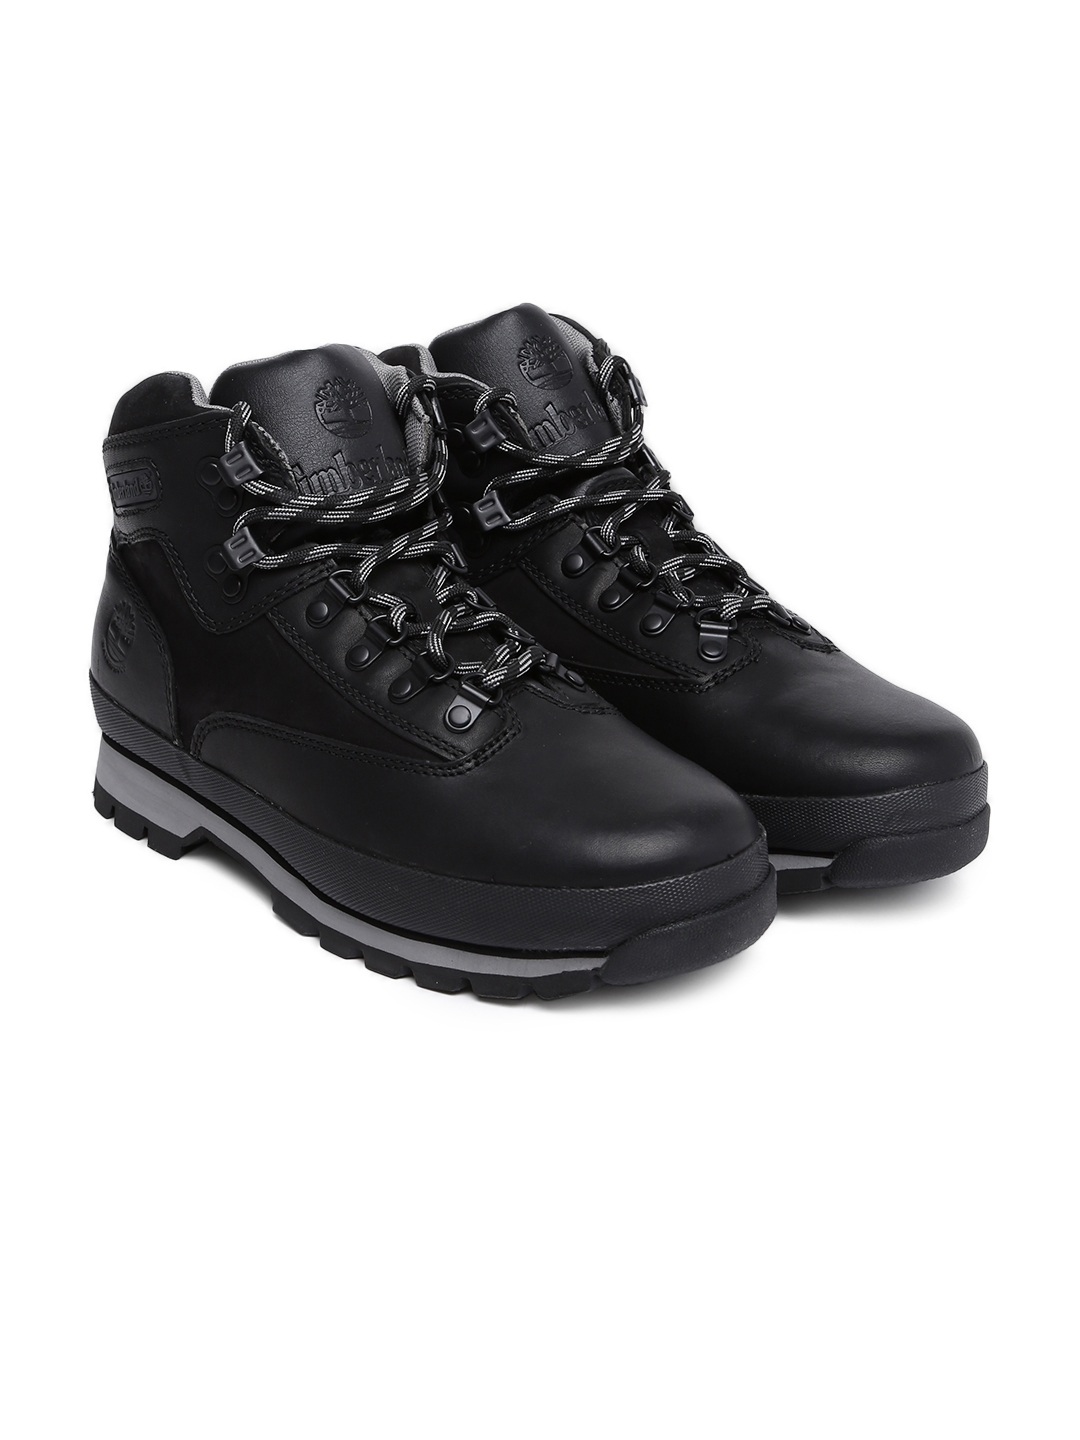 f332ba4e726 Timberland Men Black Solid Leather EUROHIKER Mid-Top Hiking Boots